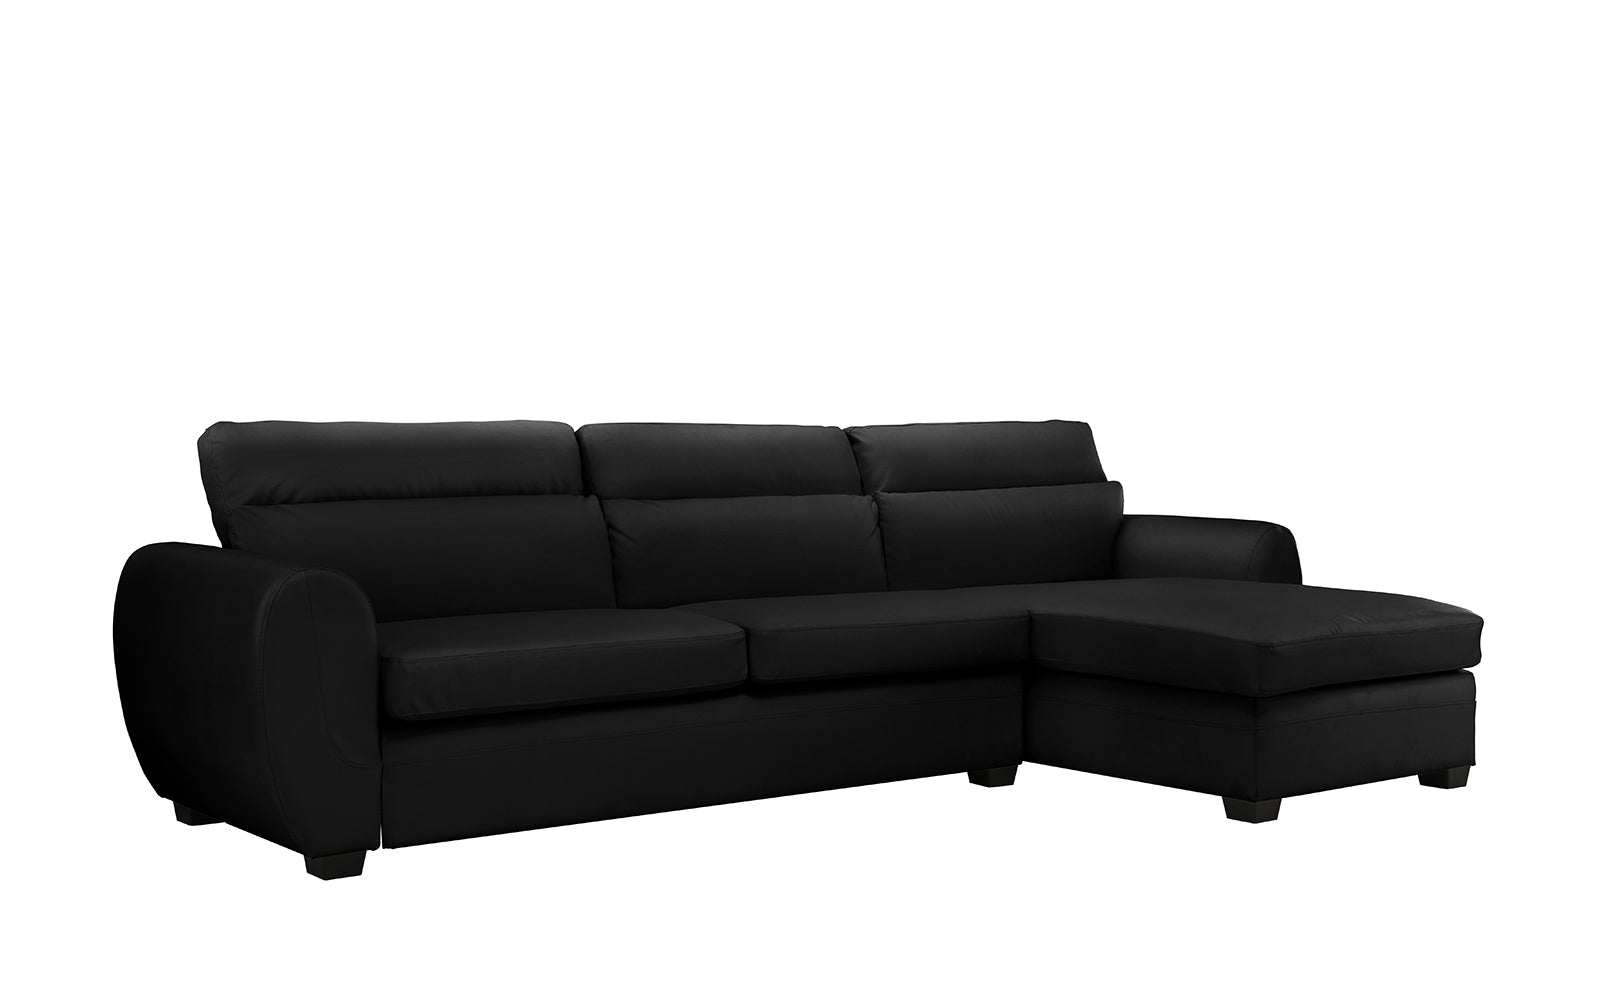 Zoe Modern Leather Sectional Sofa With Chaise